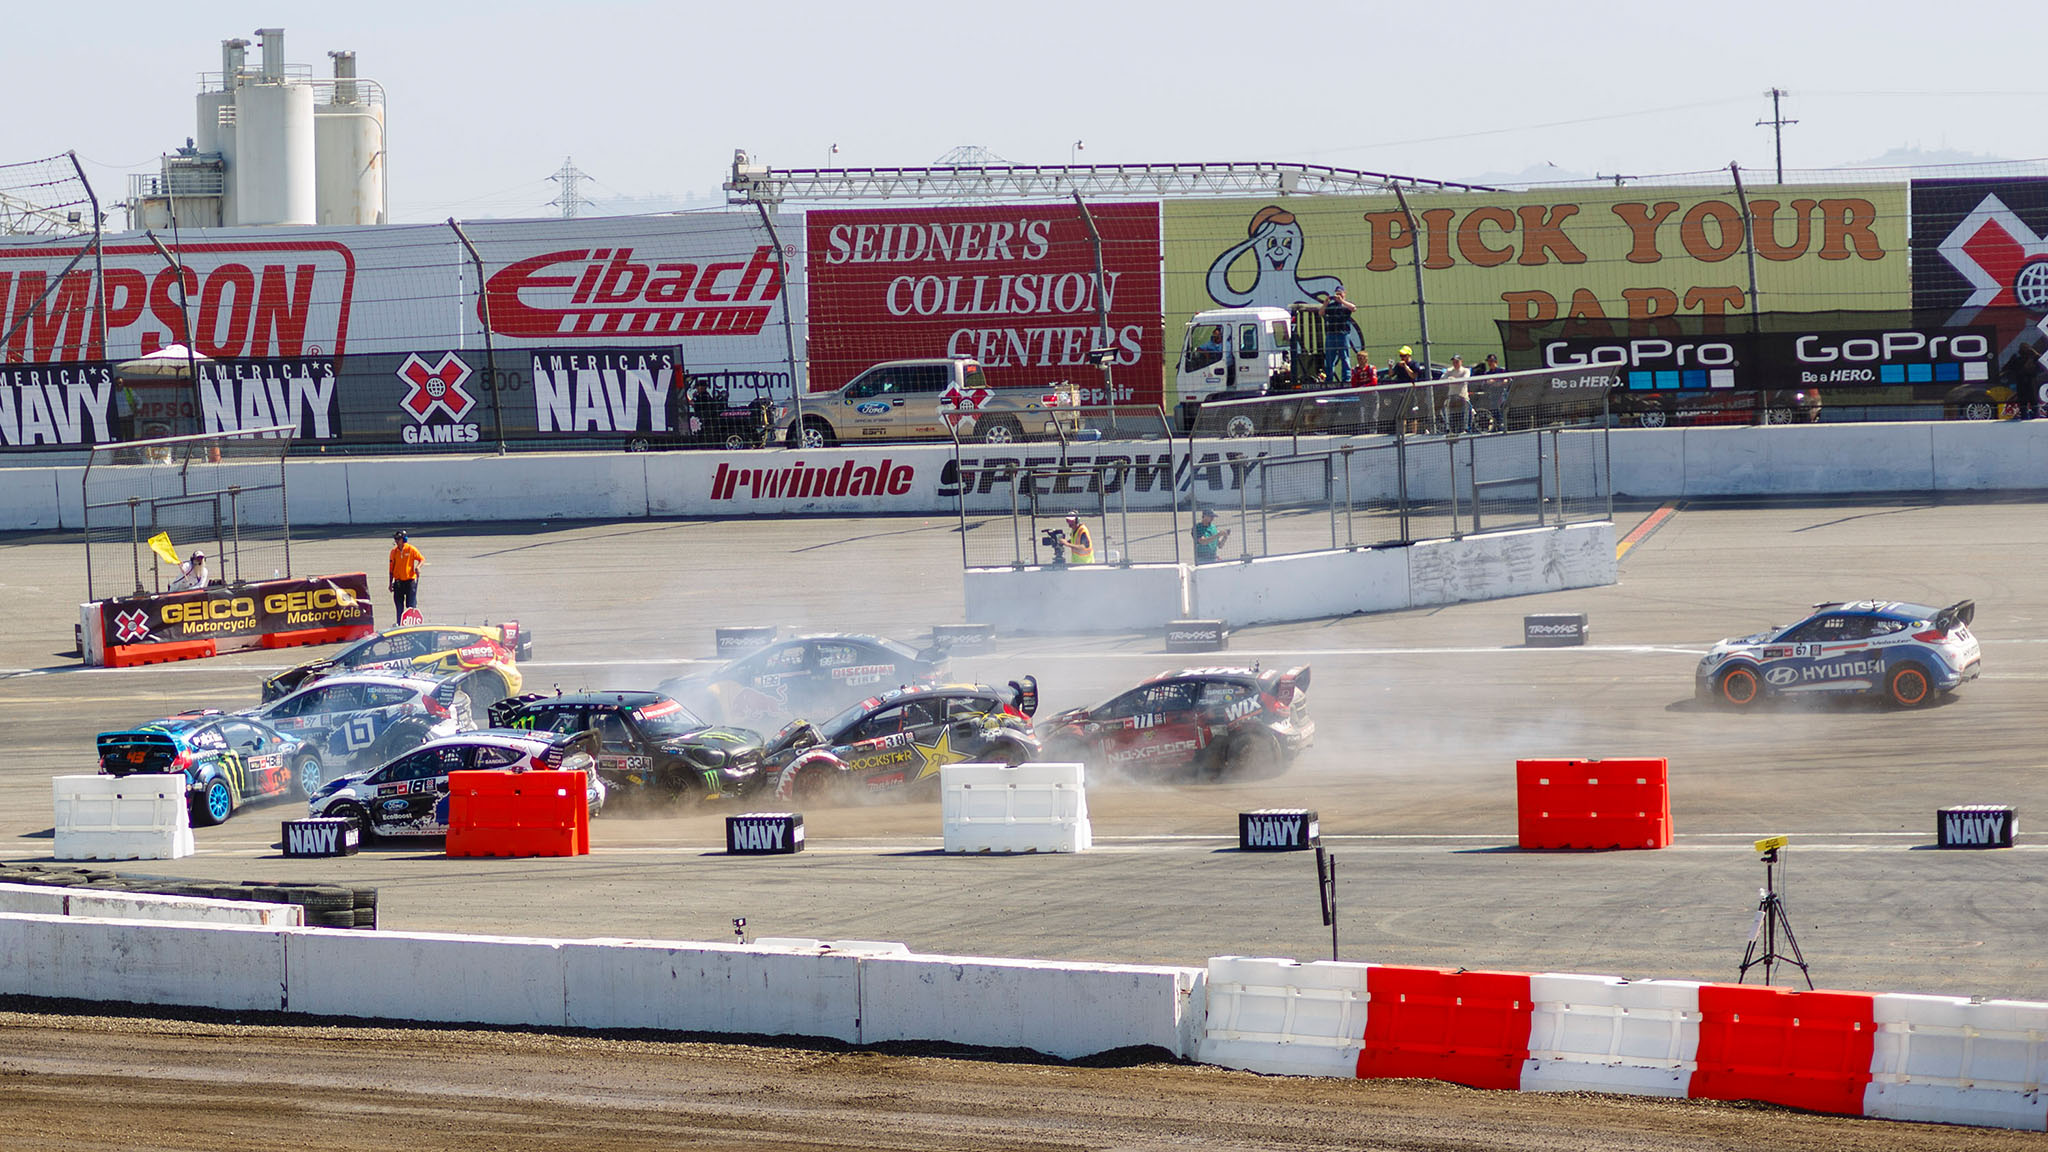 pThe crash in the first hairpin turn on the first lap of the Ford RallyCross final in X Games L.A. took out three of the race favorites: Liam Doran, Ken Block and Brian Deegan. Block and Deegan went on to finish sixth and seventh, respectively. Heikkinen, left in the white car, once again avoided the early trouble and went on to win the race. Tanner Foust finished second./p